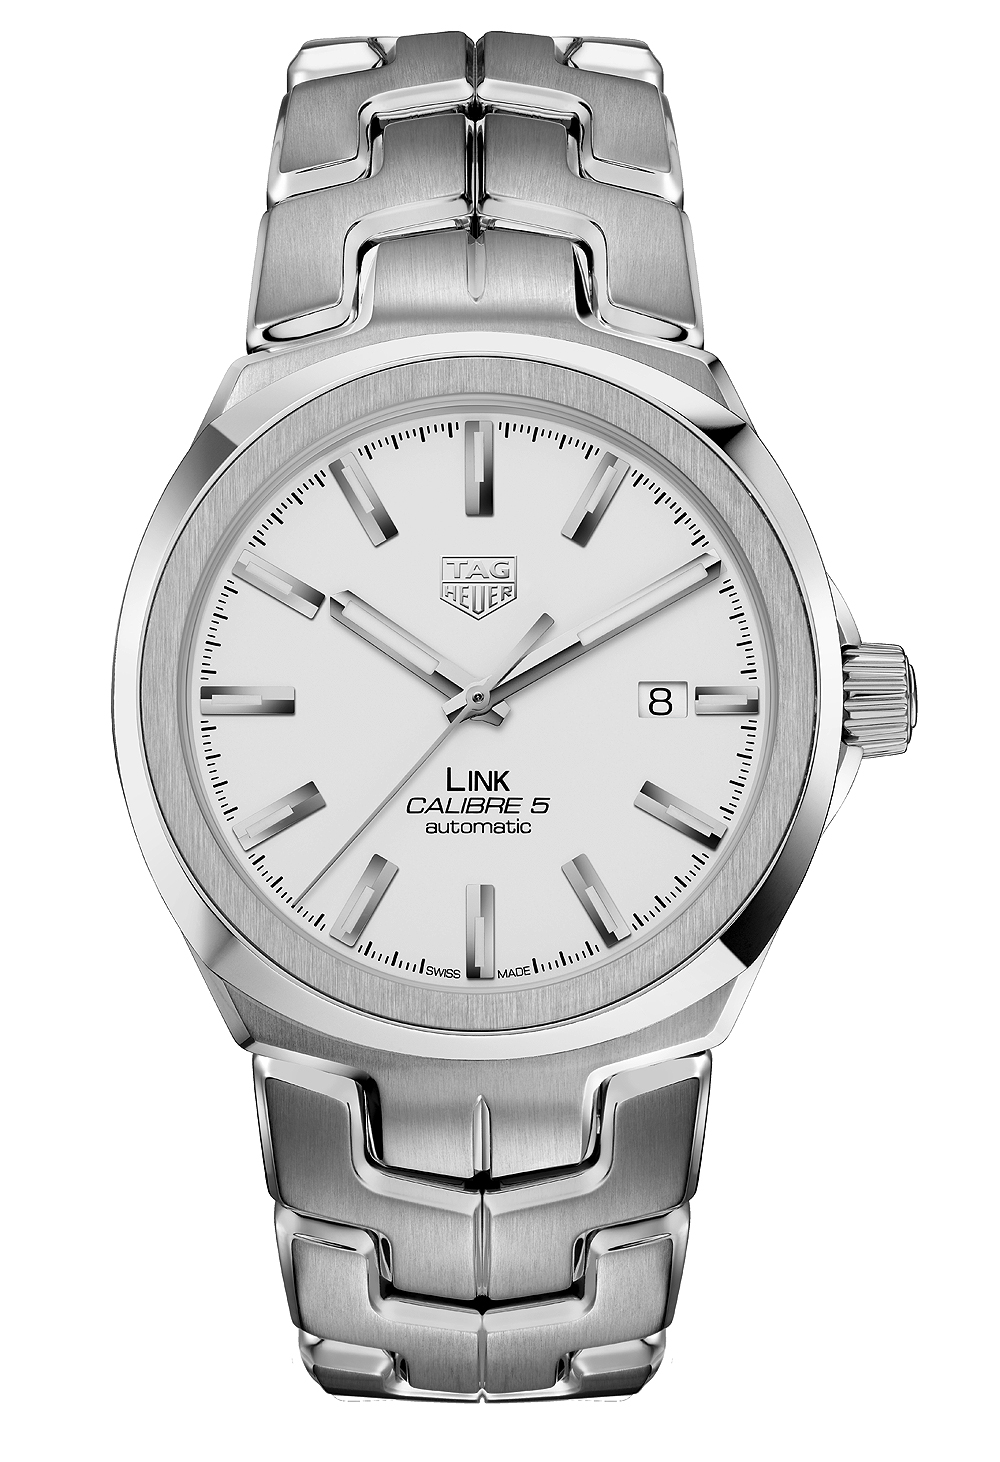 Tag heuer link replica tag heuer replica watches shop for Tag heuer d link